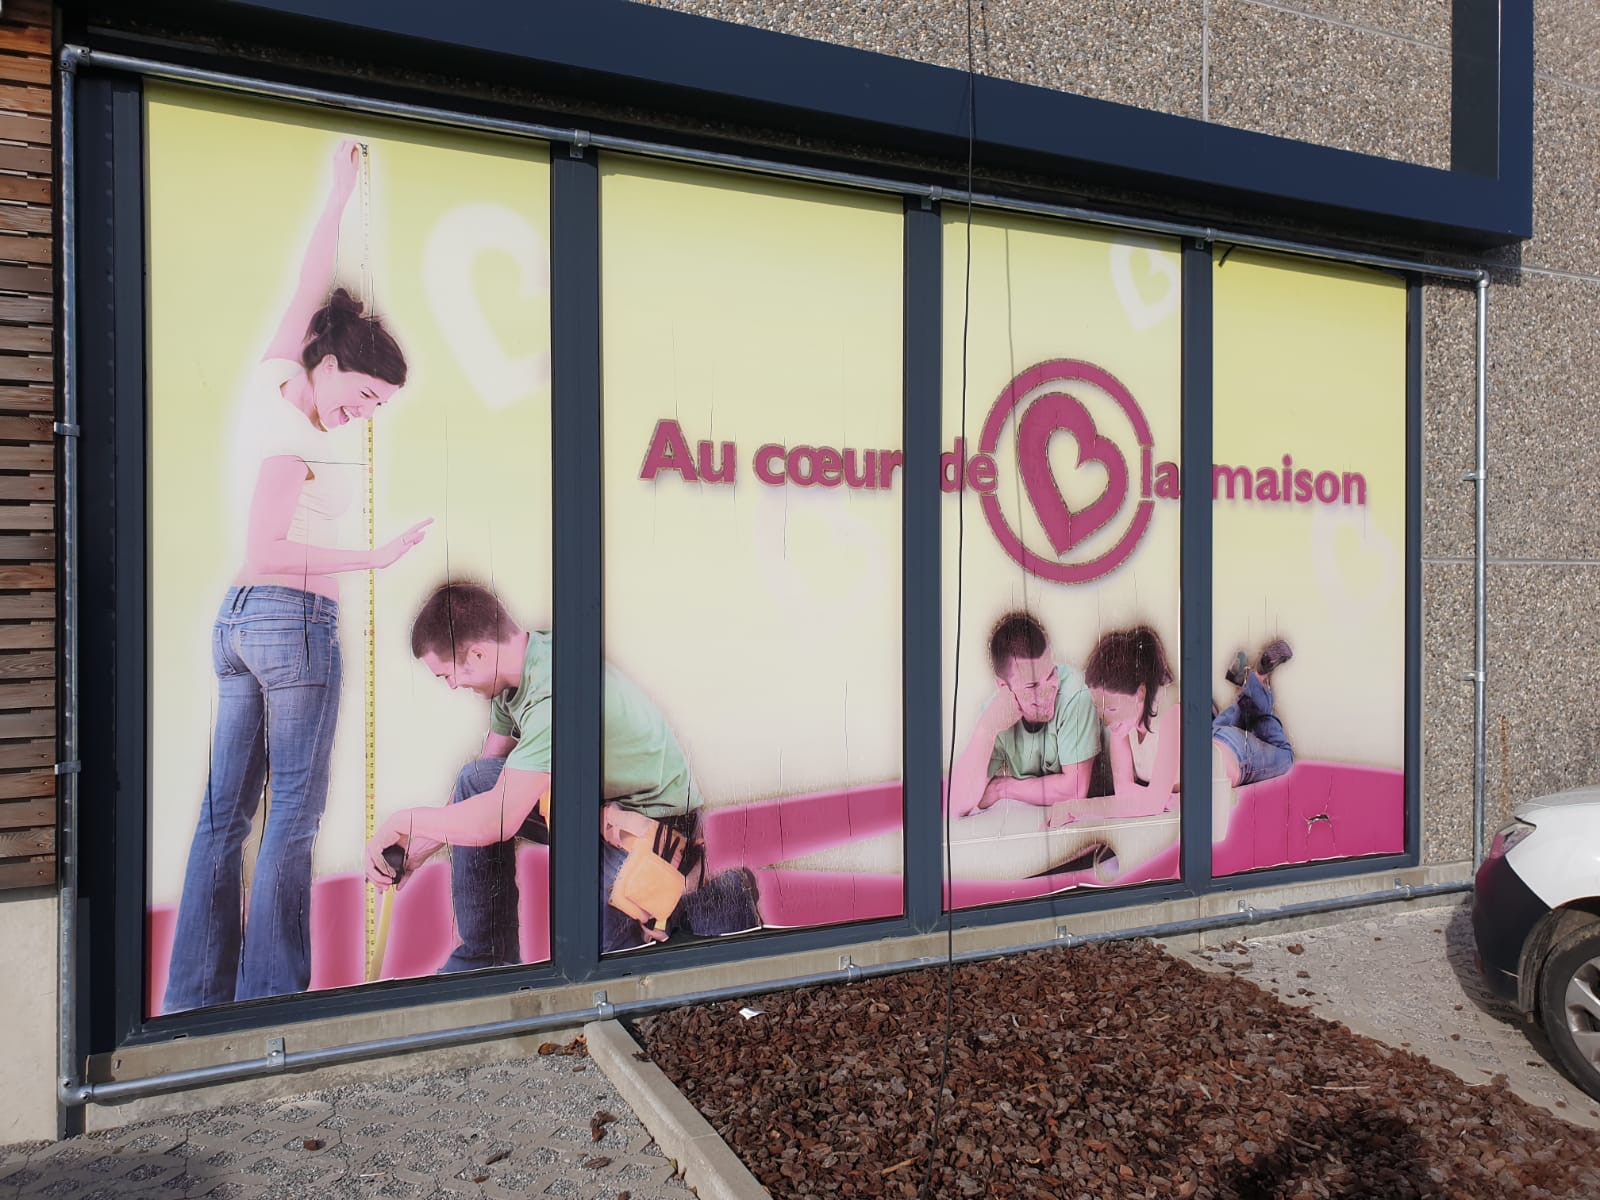 impression sur vitrine so-lution